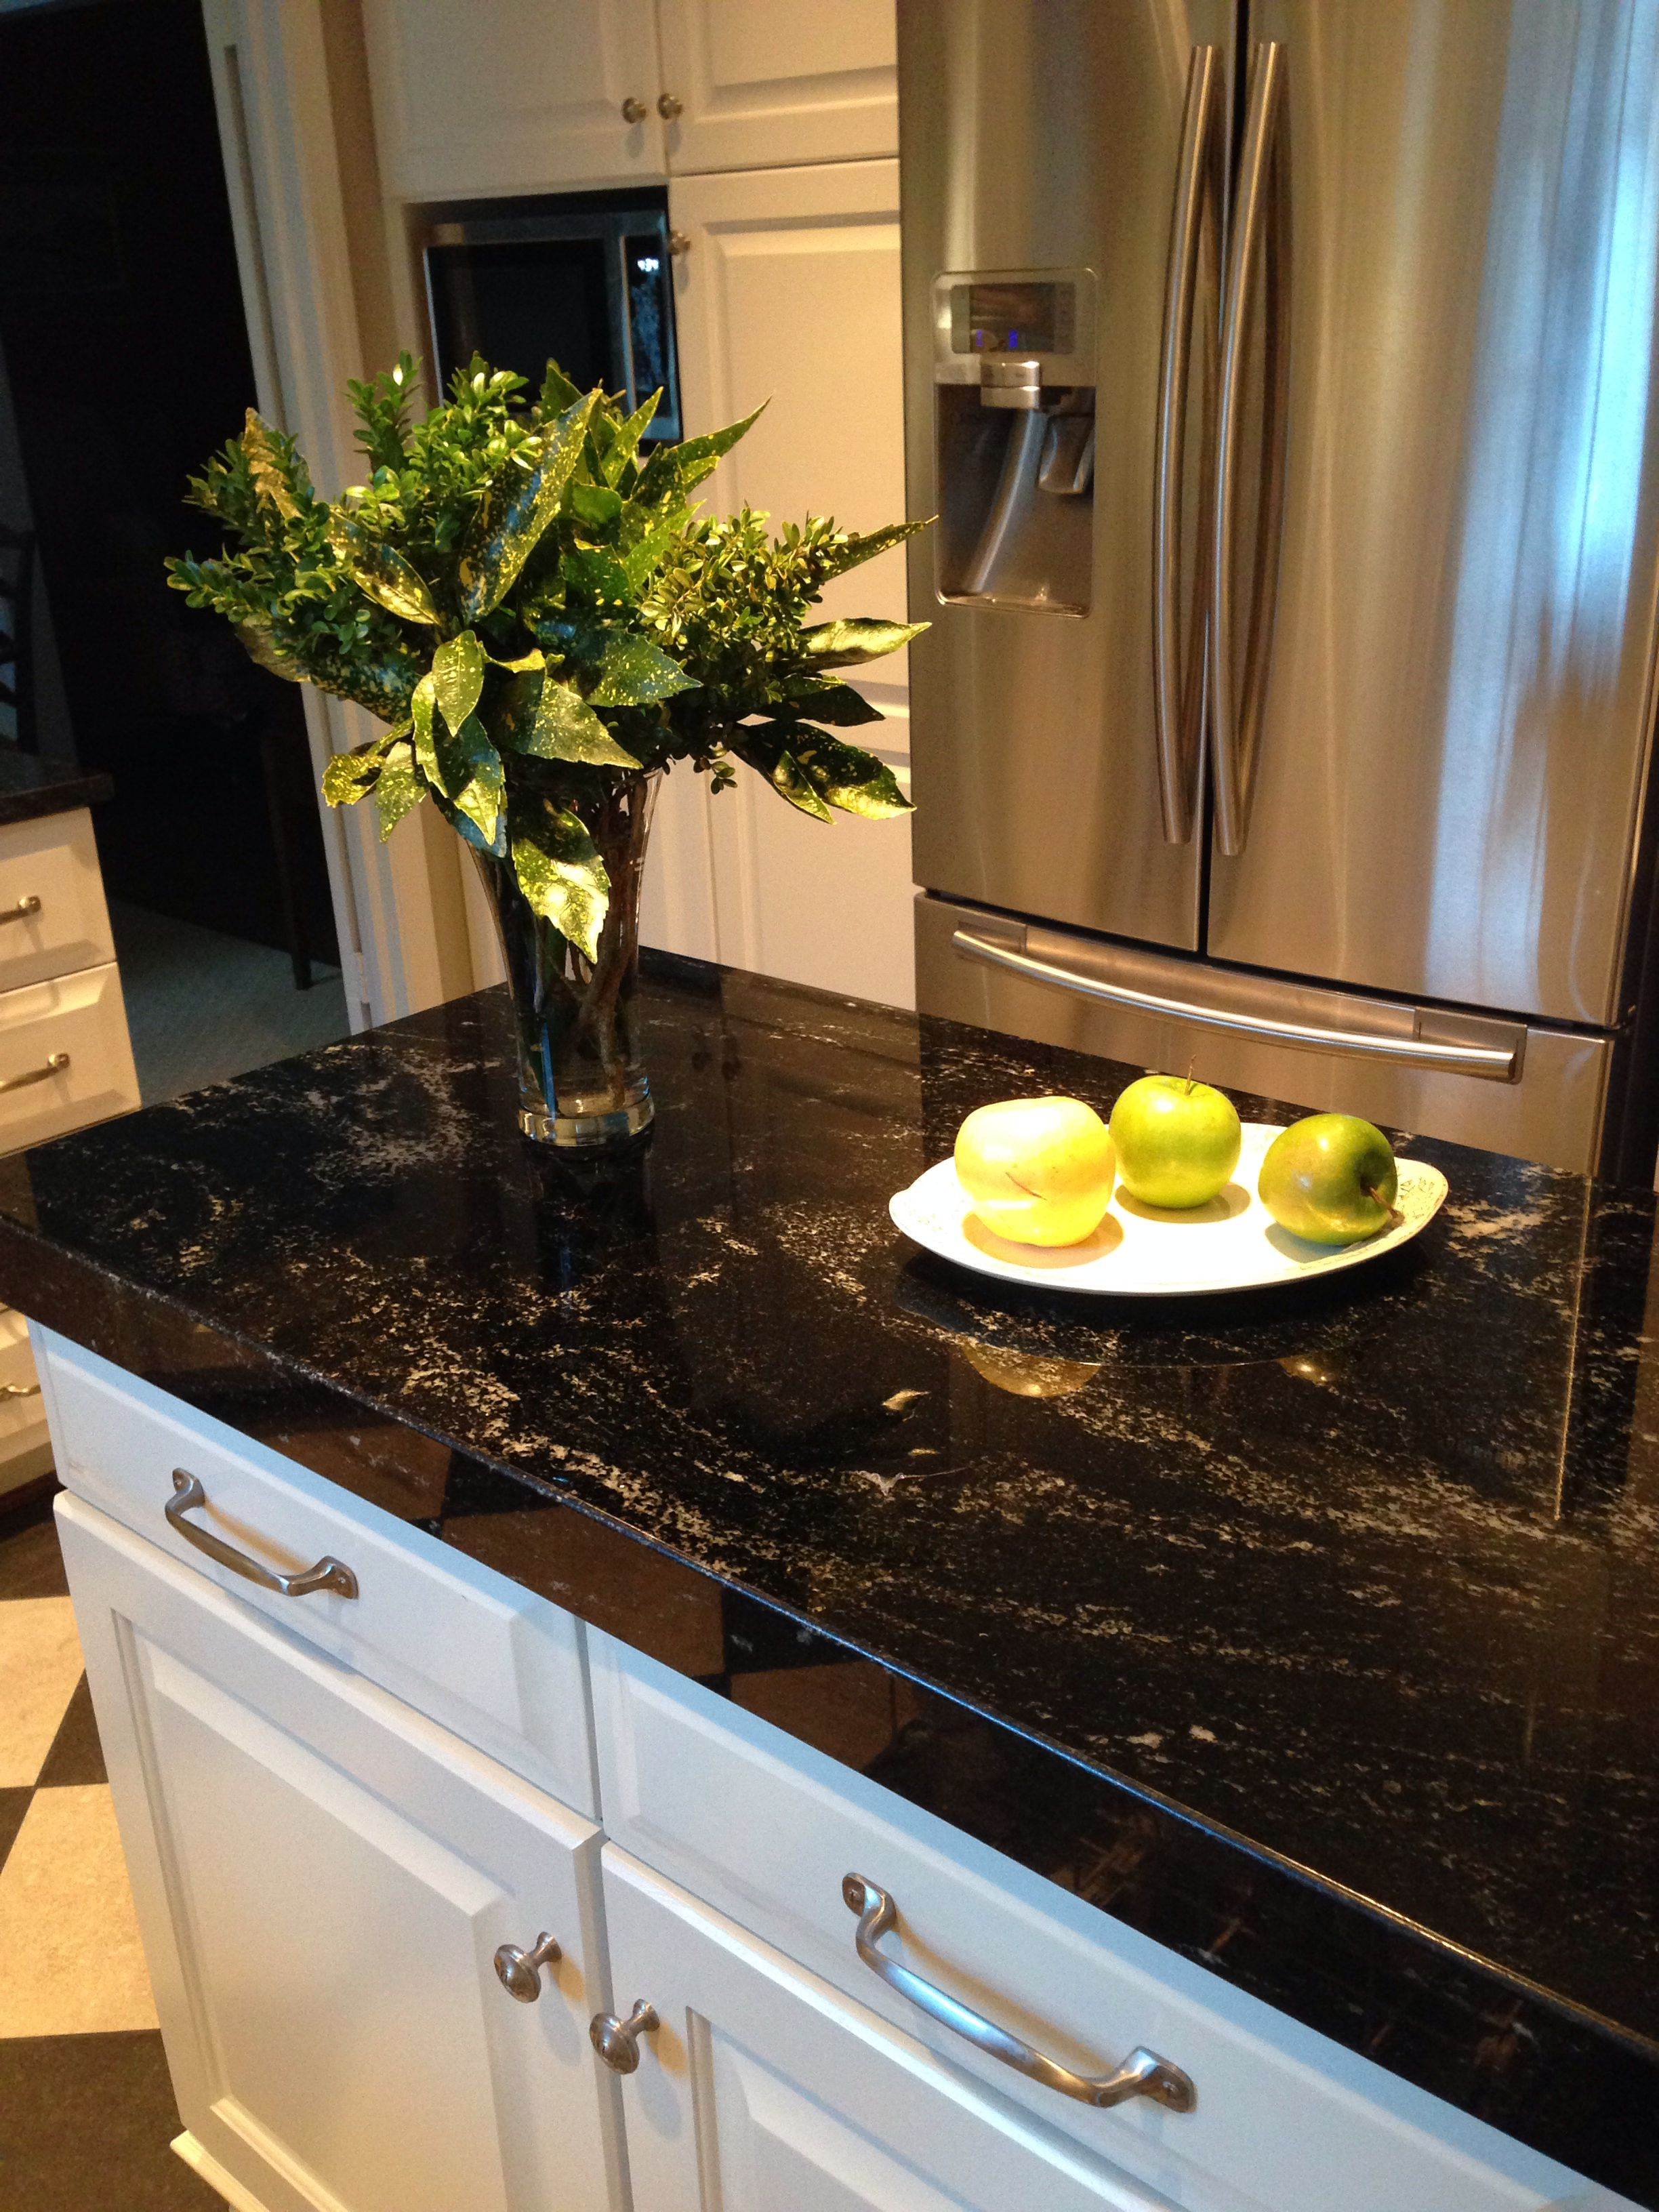 Pin By Lisa Britt On Kitchens Granite Dining Table Kitchen Cabinet Styles Kitchen Tops